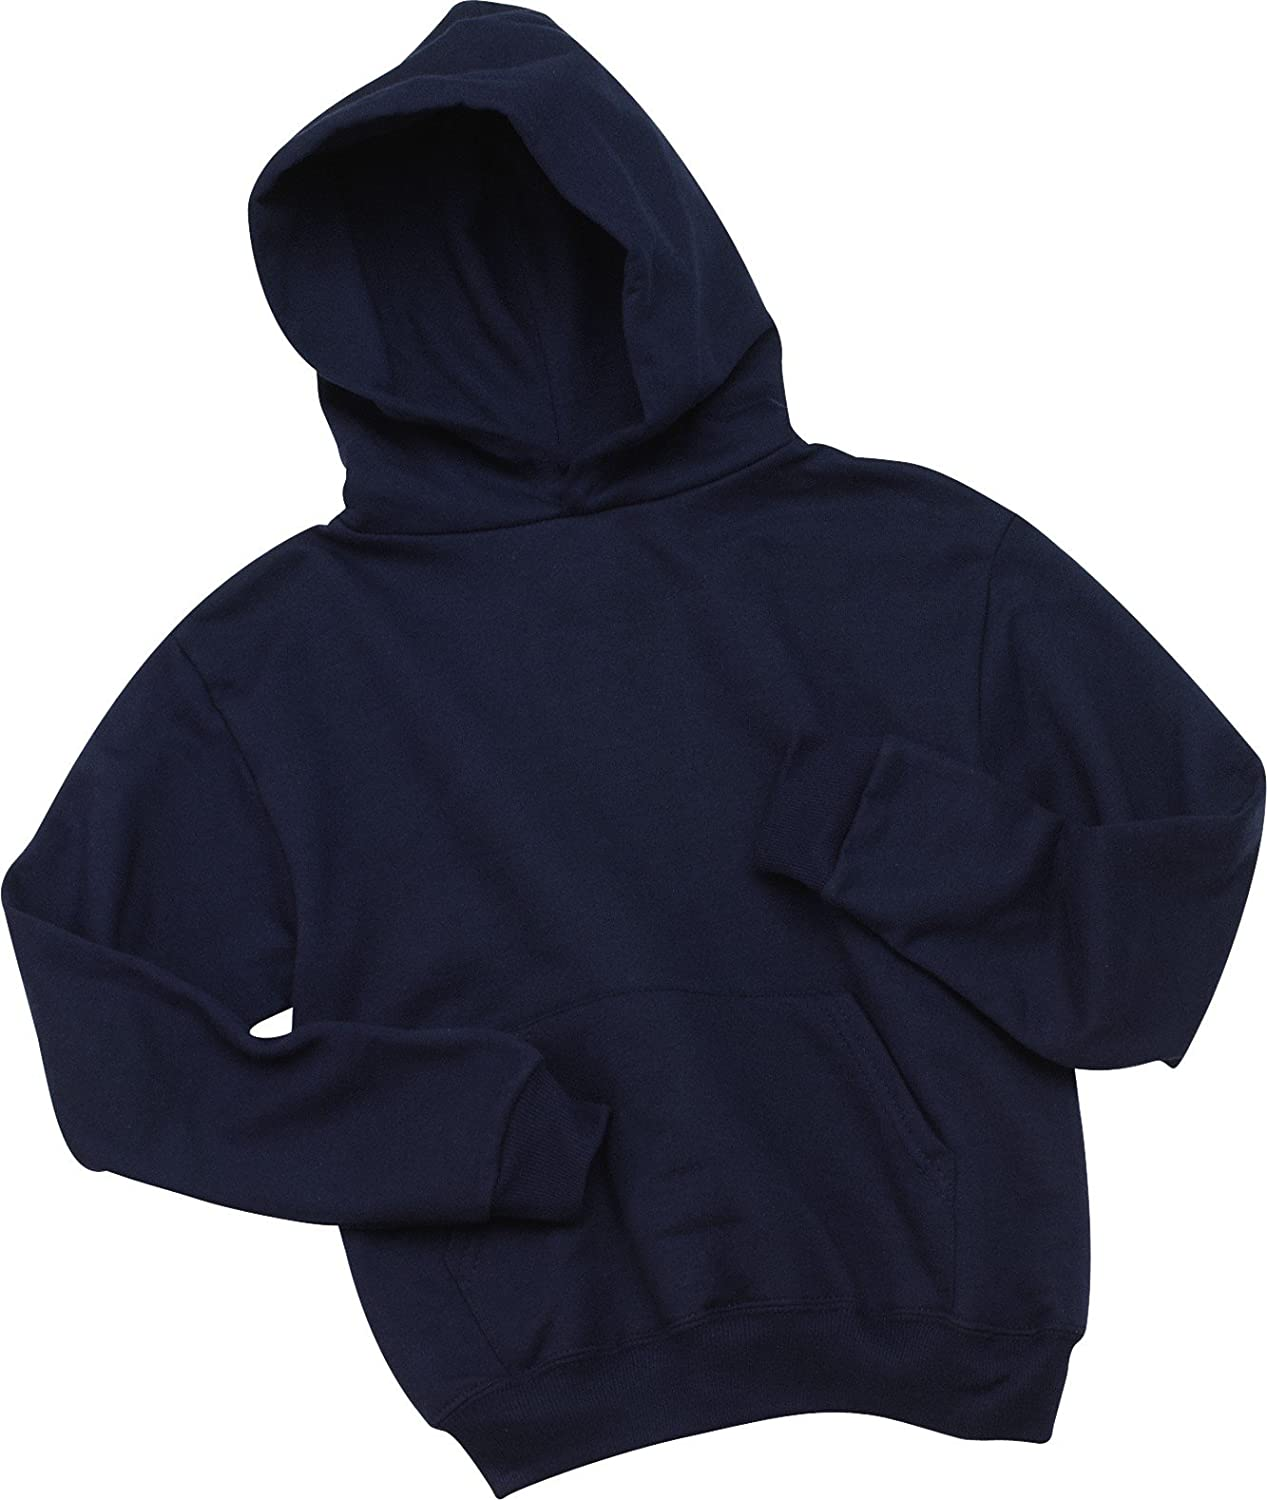 996Y J NAVY Jerzees Youth 8 oz. 50//50 NuBlend Fleece Pullover Hood